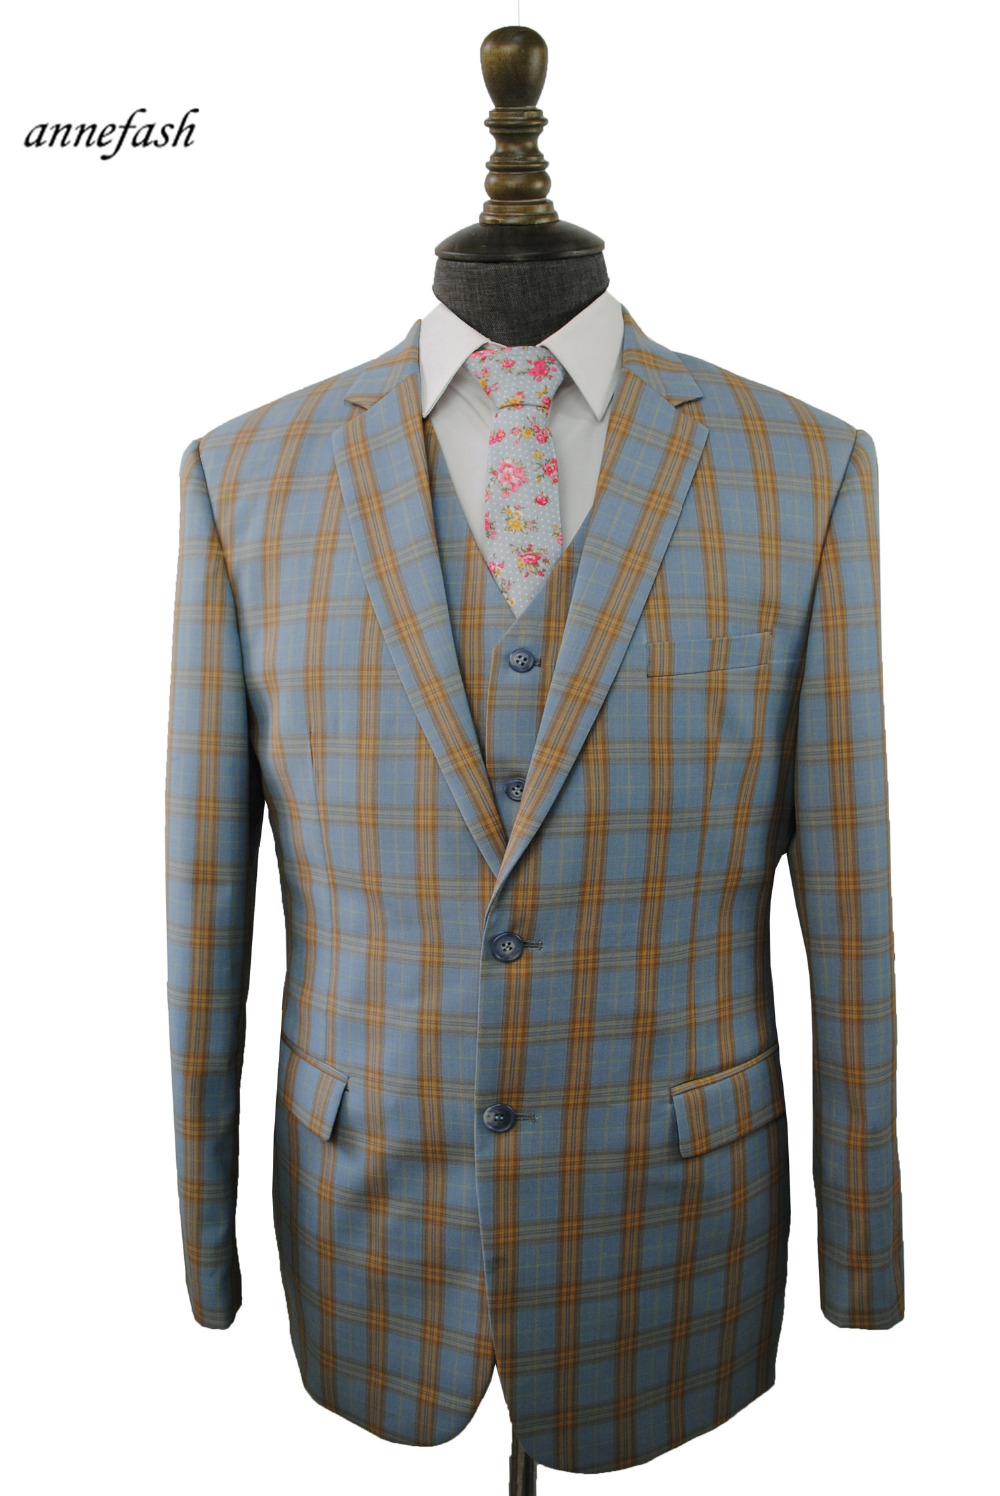 749419fa197859 Custom Made High Quality 150u0027s Worsted Pure Wool Light Blue Windowpane  Check Suit Men Slim Fit Suit(jacket+pants+vest) 22 Color-in Suits From  Menu0027s ...